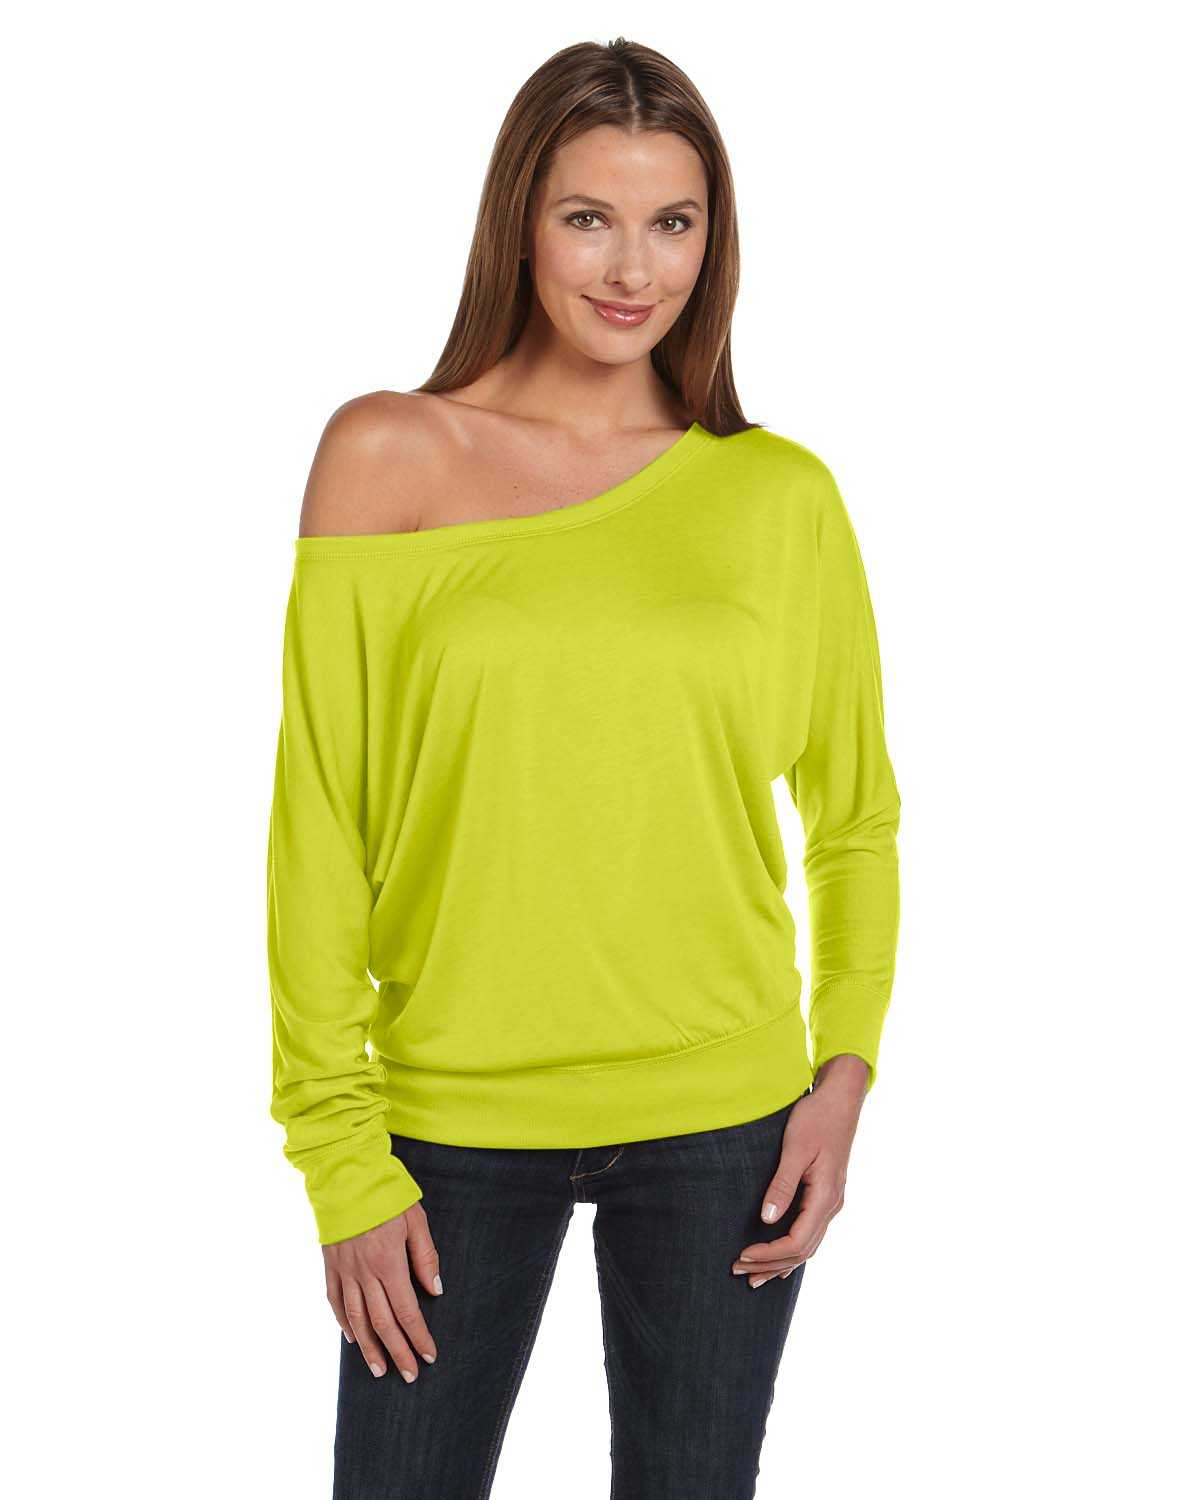 Off Shoulder Long Sleeve Shirts: s2w6s5q3to.gq - Your Online Tops Store! Get 5% in rewards with Club O!